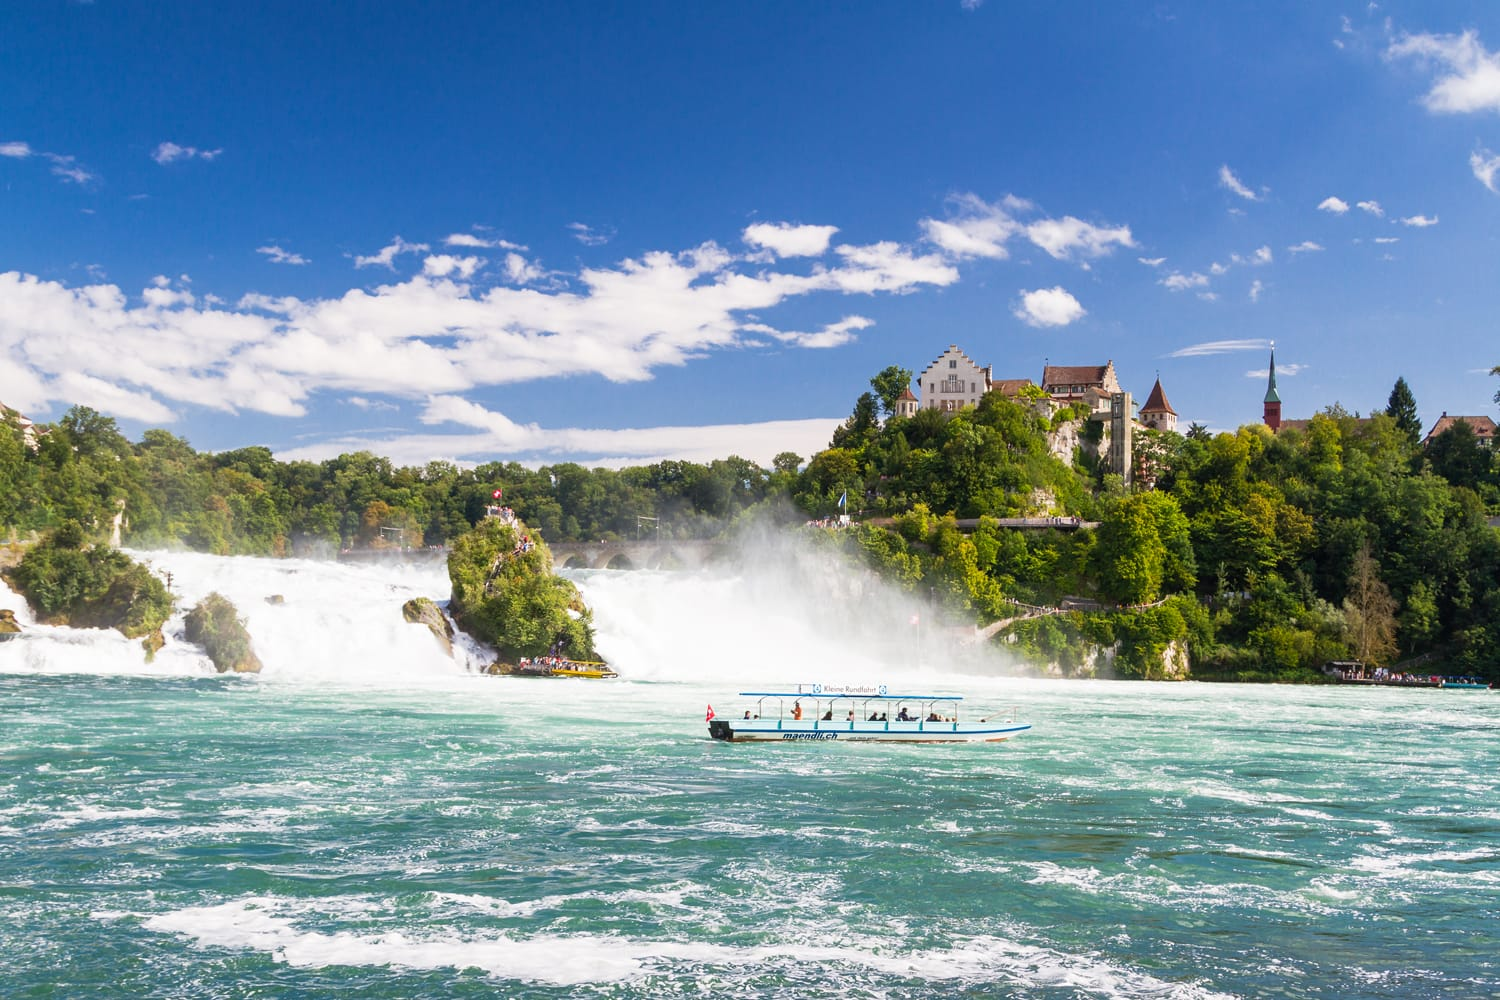 The Rhine Falls in Schaffhausen, Switzerland. The Rhine Falls is the largest waterfall in Europe.